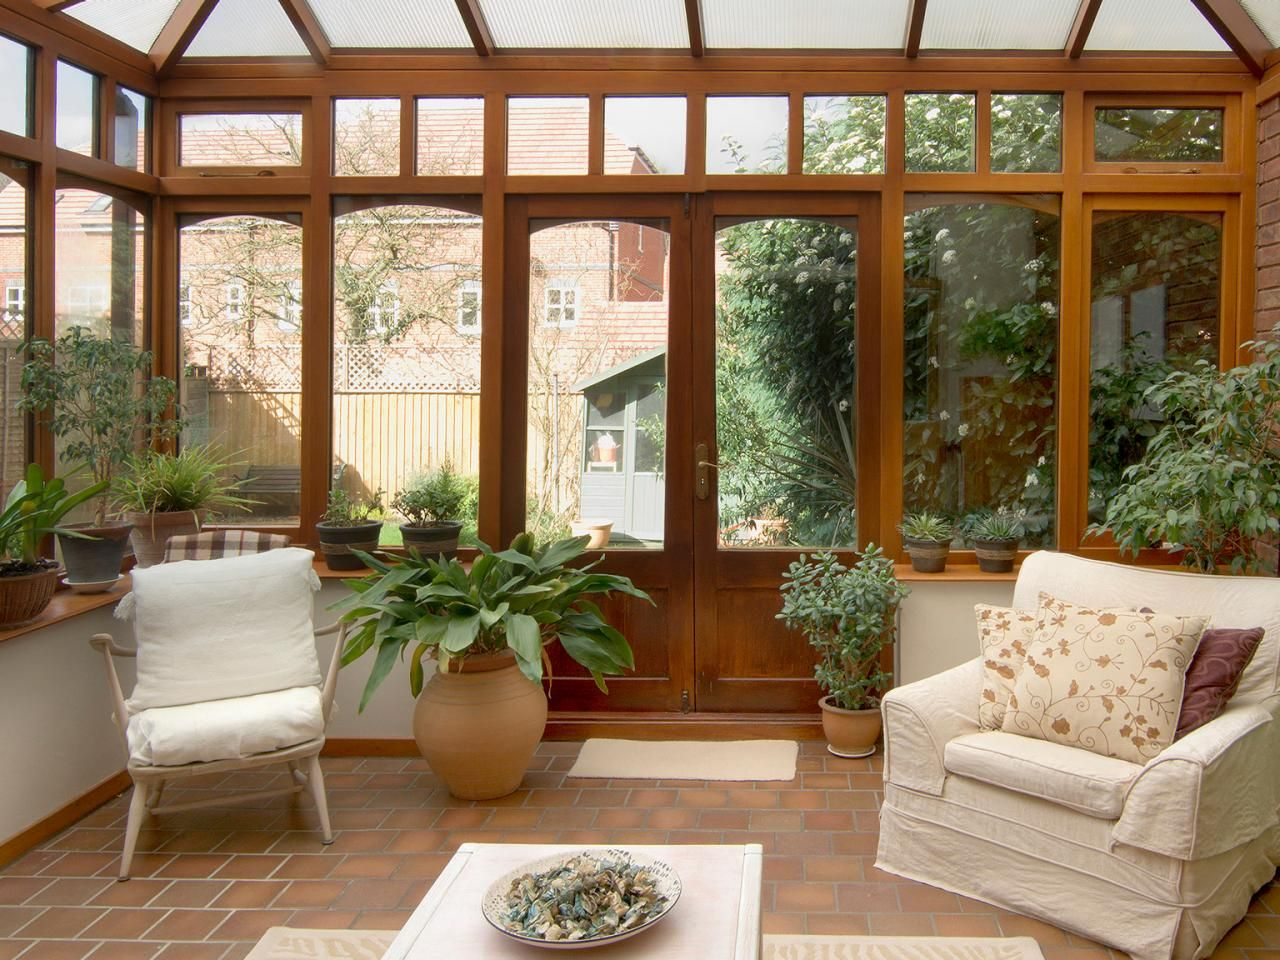 Explore Your Many Options For Patio Enclosures, And Browse Great Pictures  From HGTV For Inspiration